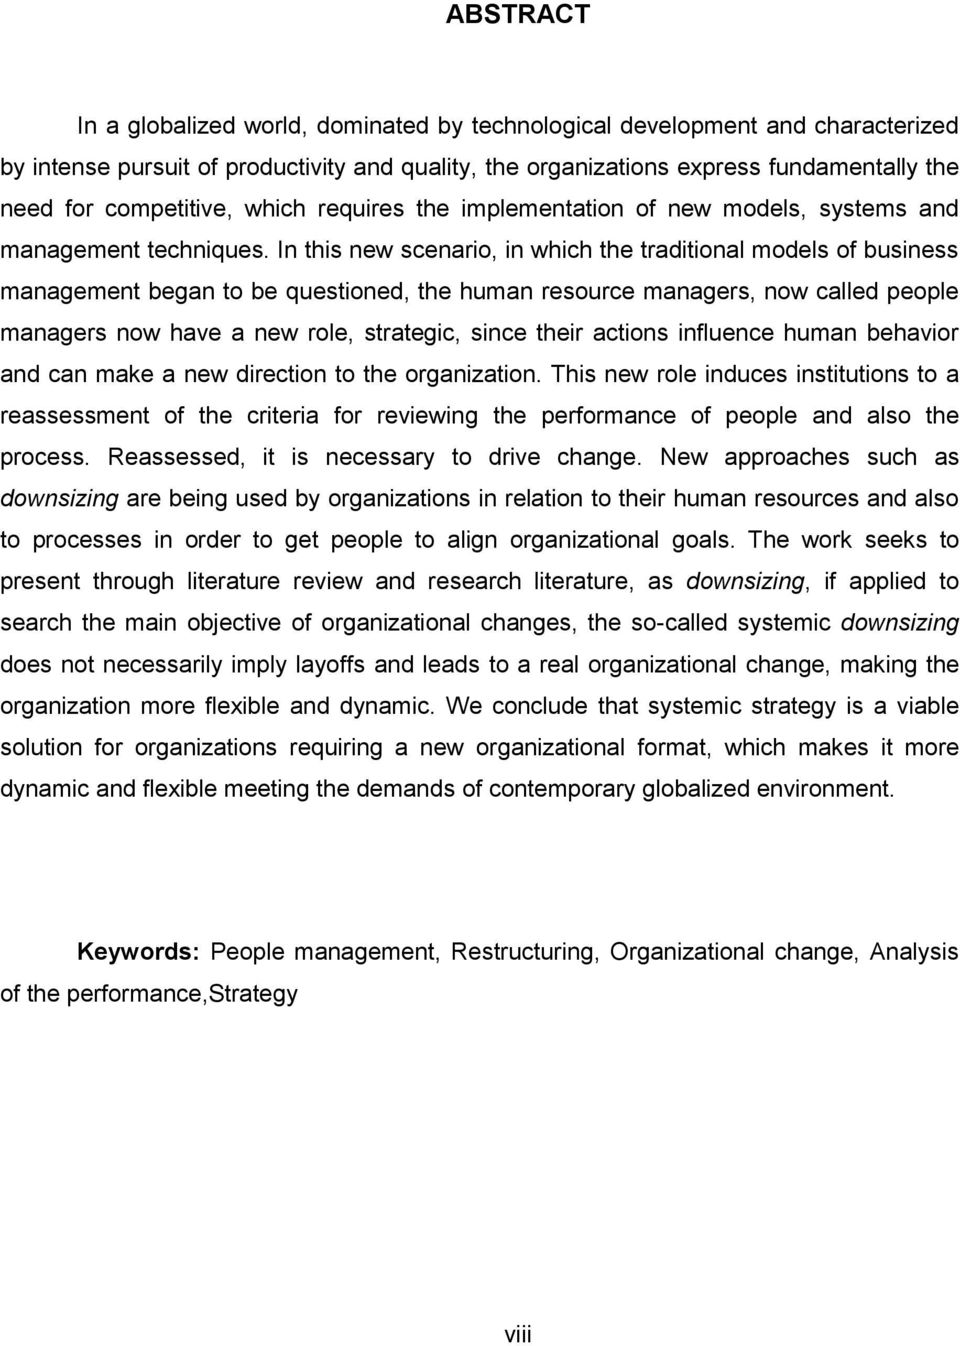 In this new scenario, in which the traditional models of business management began to be questioned, the human resource managers, now called people managers now have a new role, strategic, since